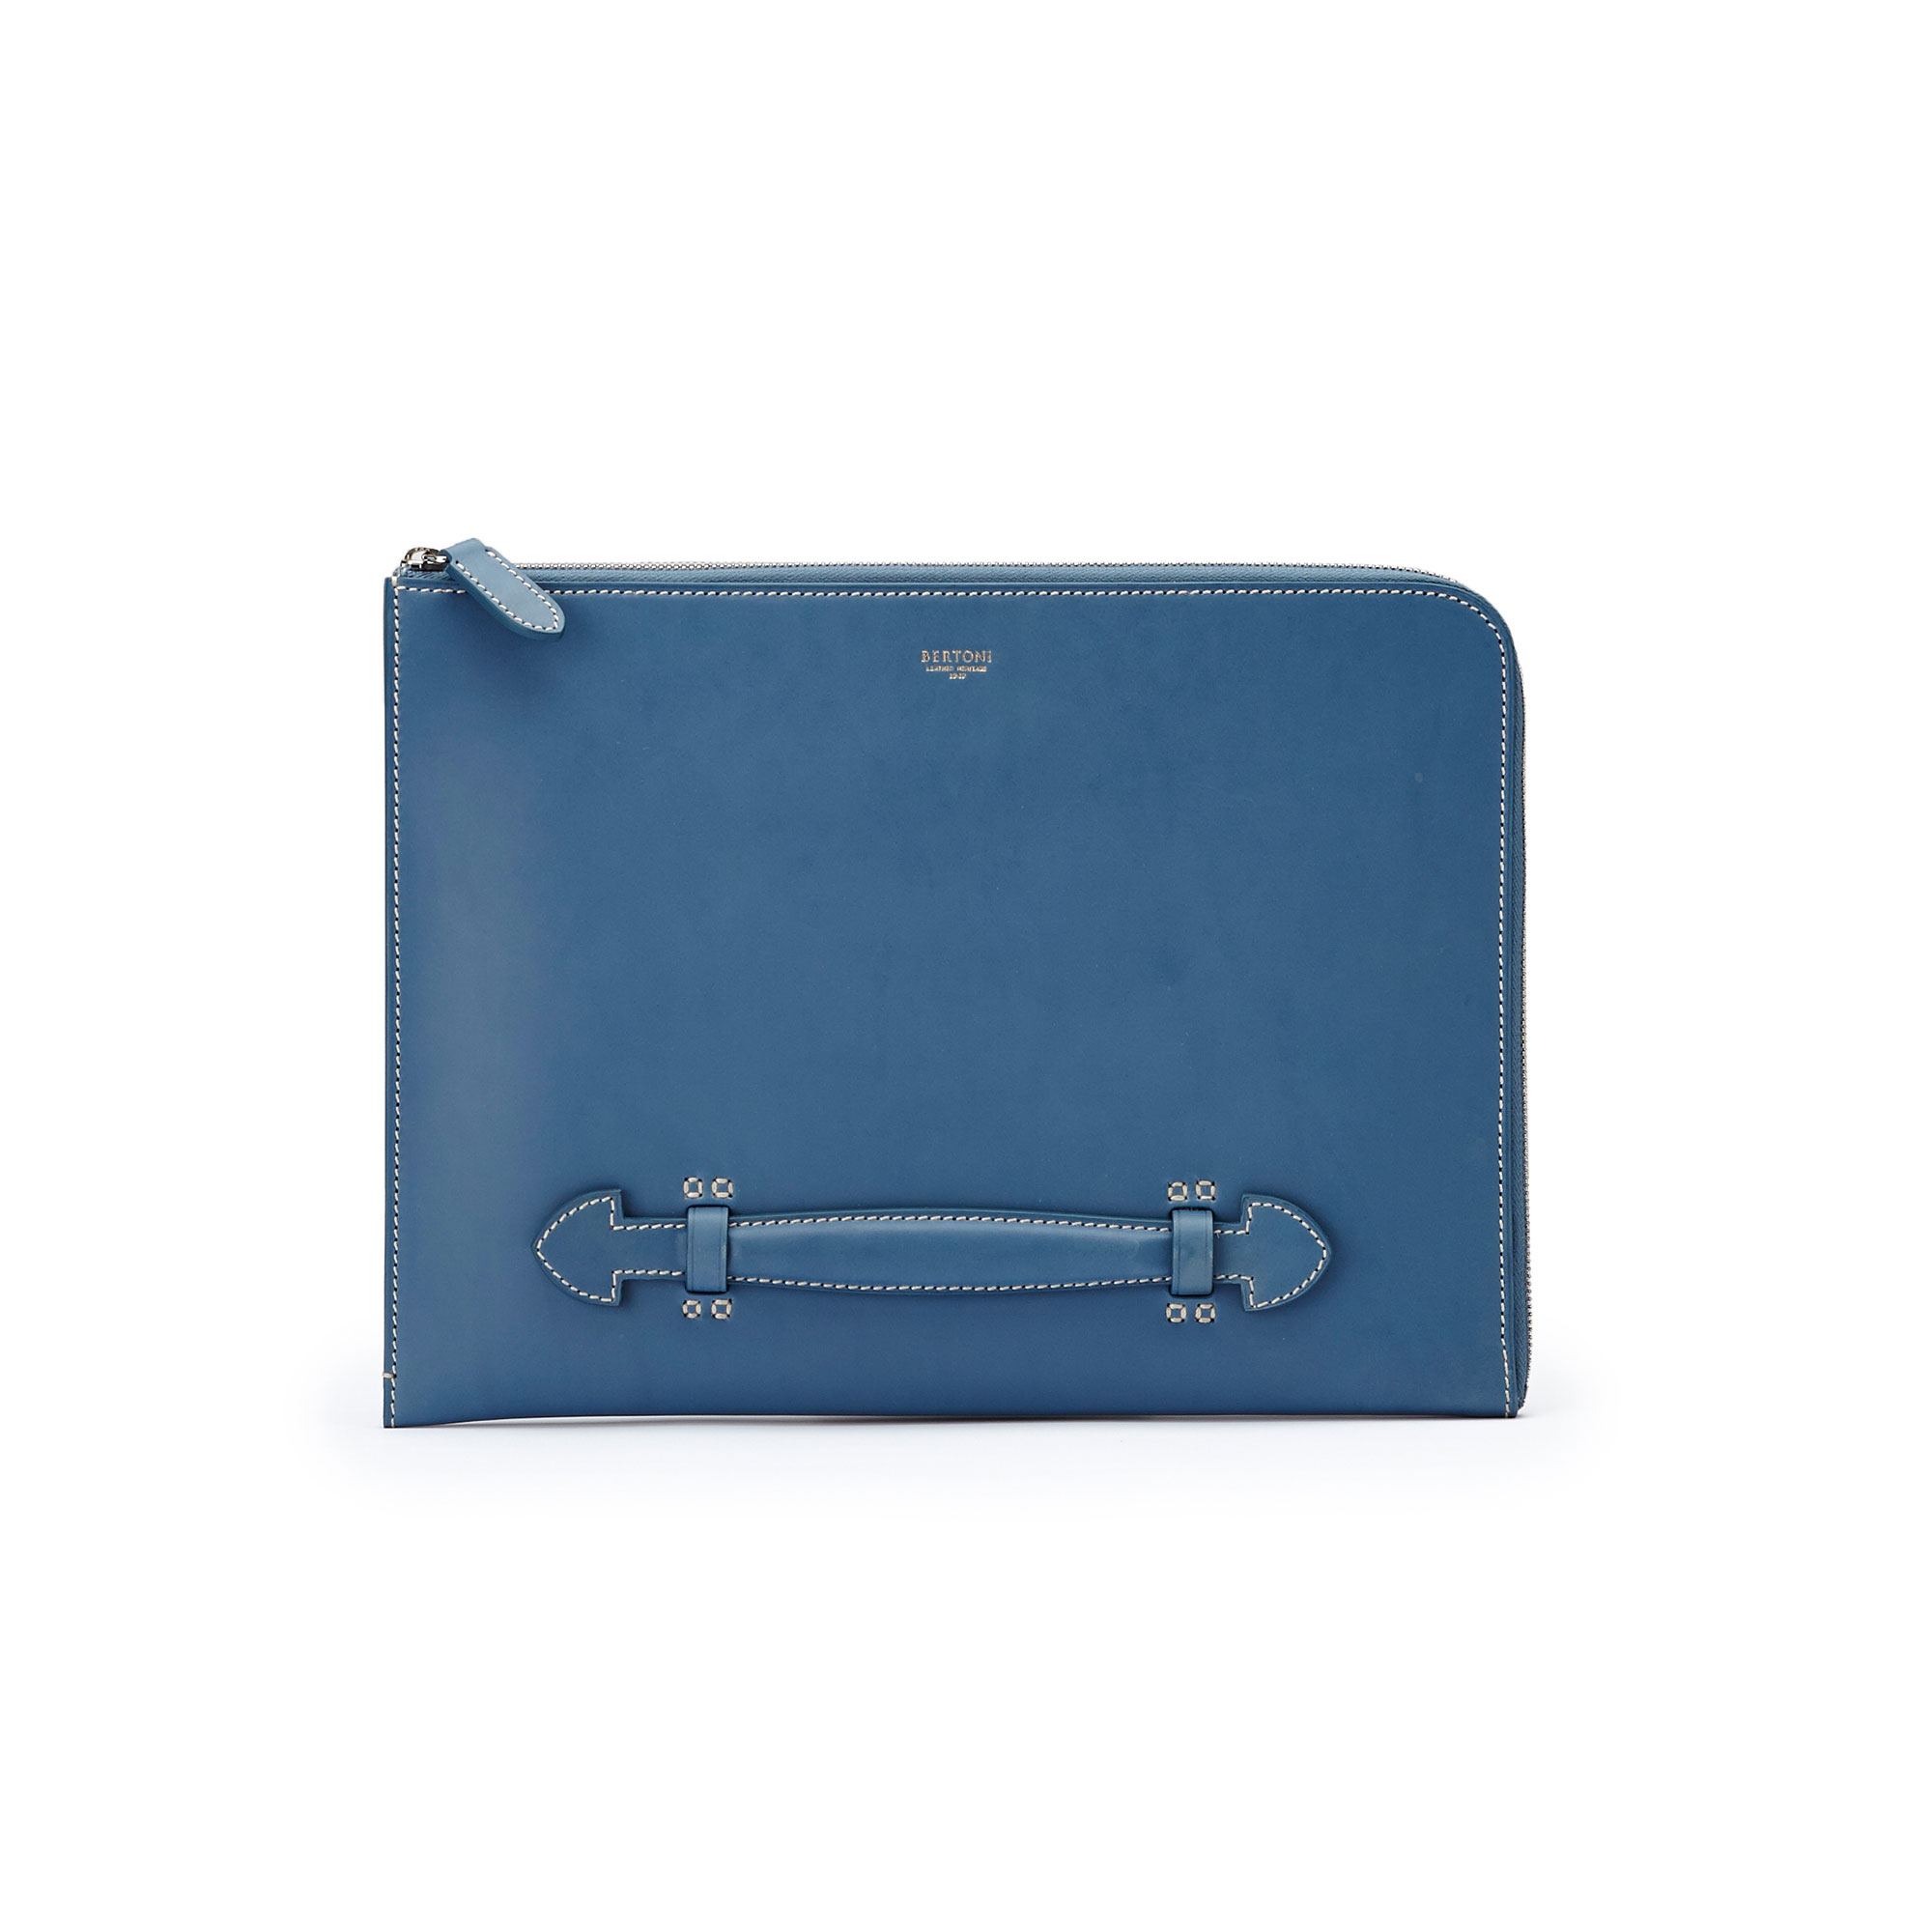 The blue french calf Handle Zip Folio 33 by Bertoni 1949 01